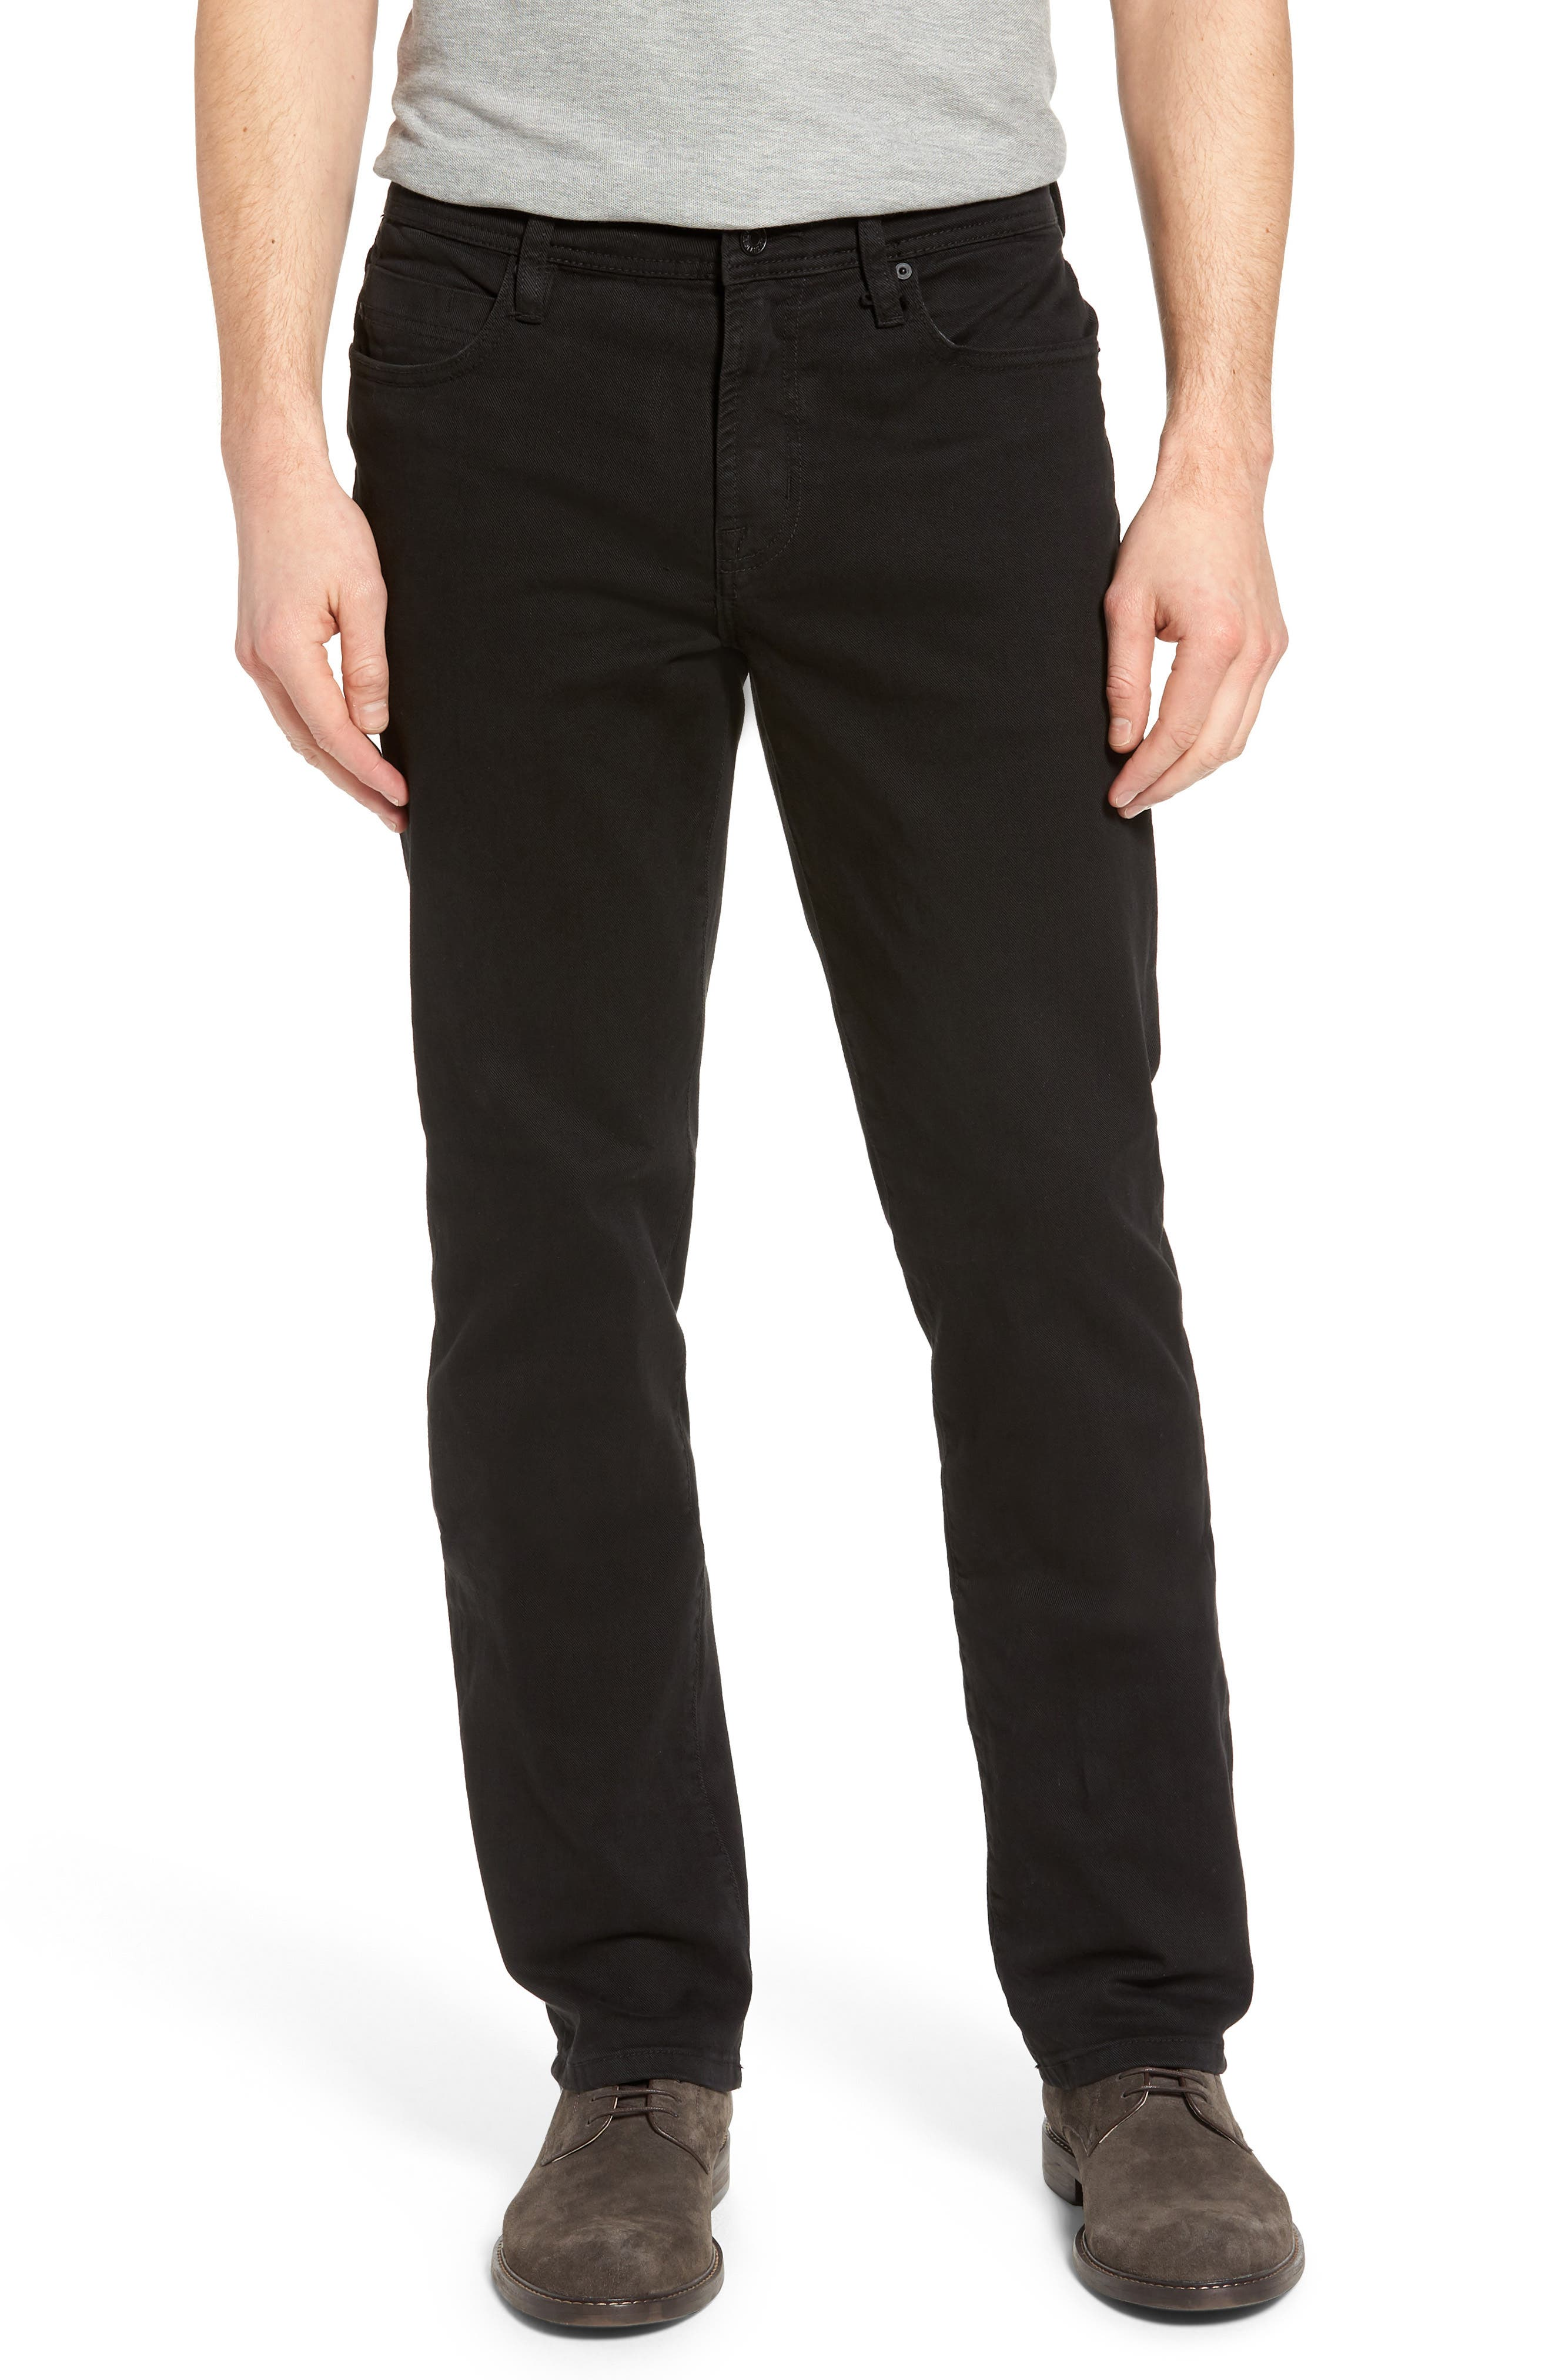 Jeans Co. Regent Relaxed Fit Jeans,                         Main,                         color, Black Rinse